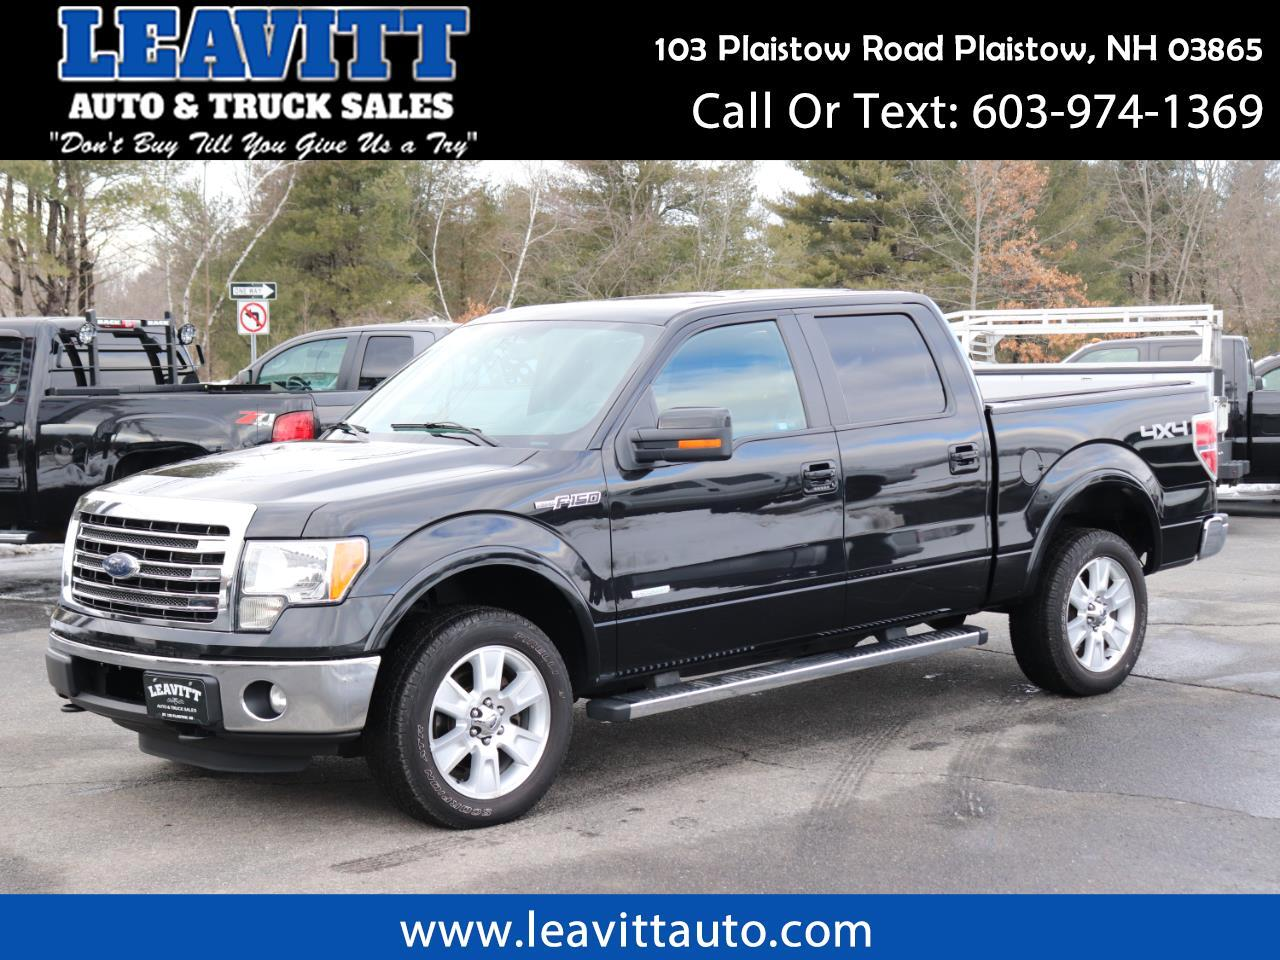 2013 Ford F-150 LARIAT SUPERCREW 4X4 LOADED